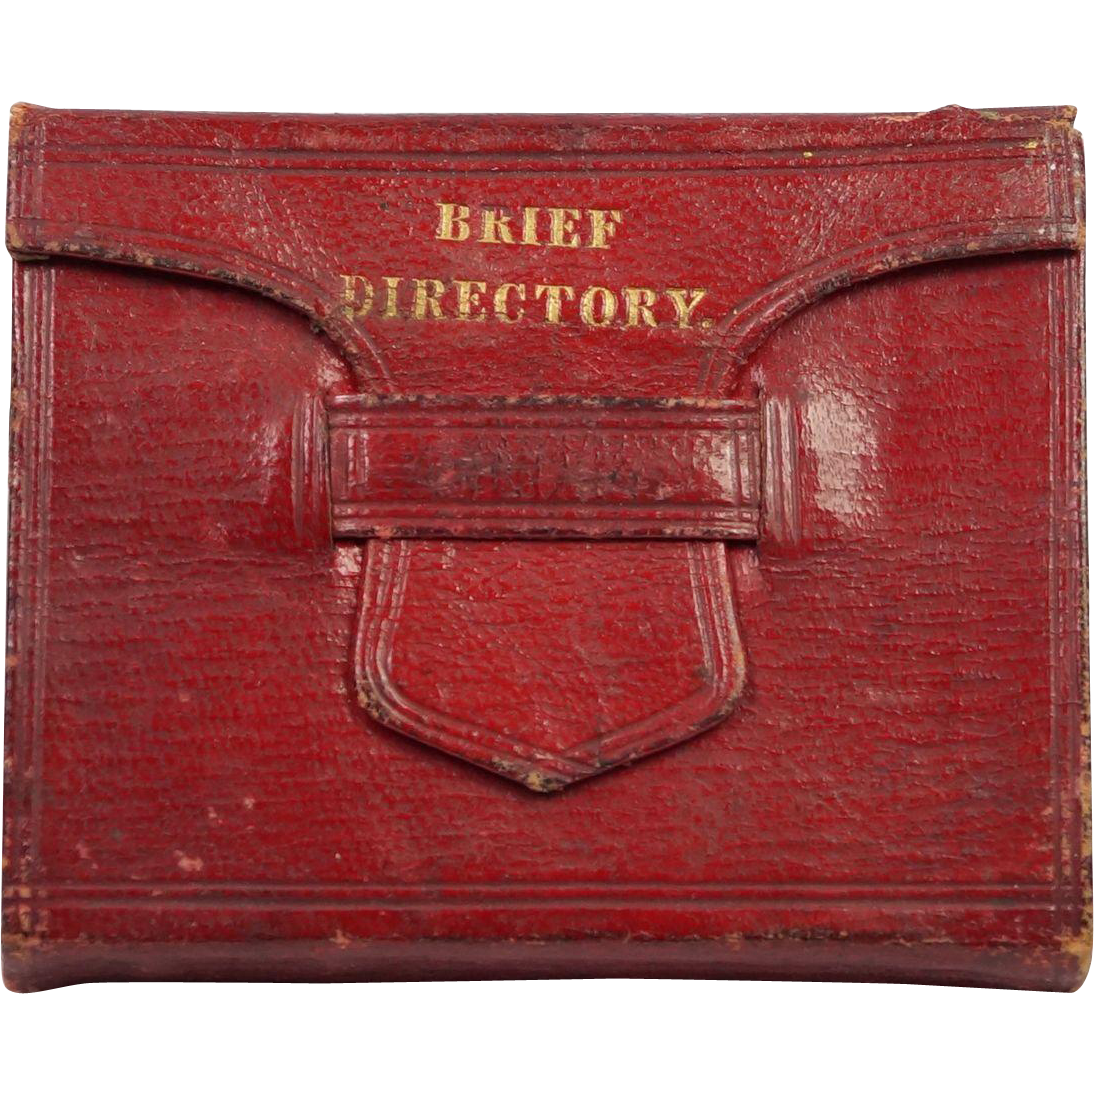 Georgian Miniature Book Red Leather A Brief Directory For Evangelical Ministers Perfect For Dolls C 1830s